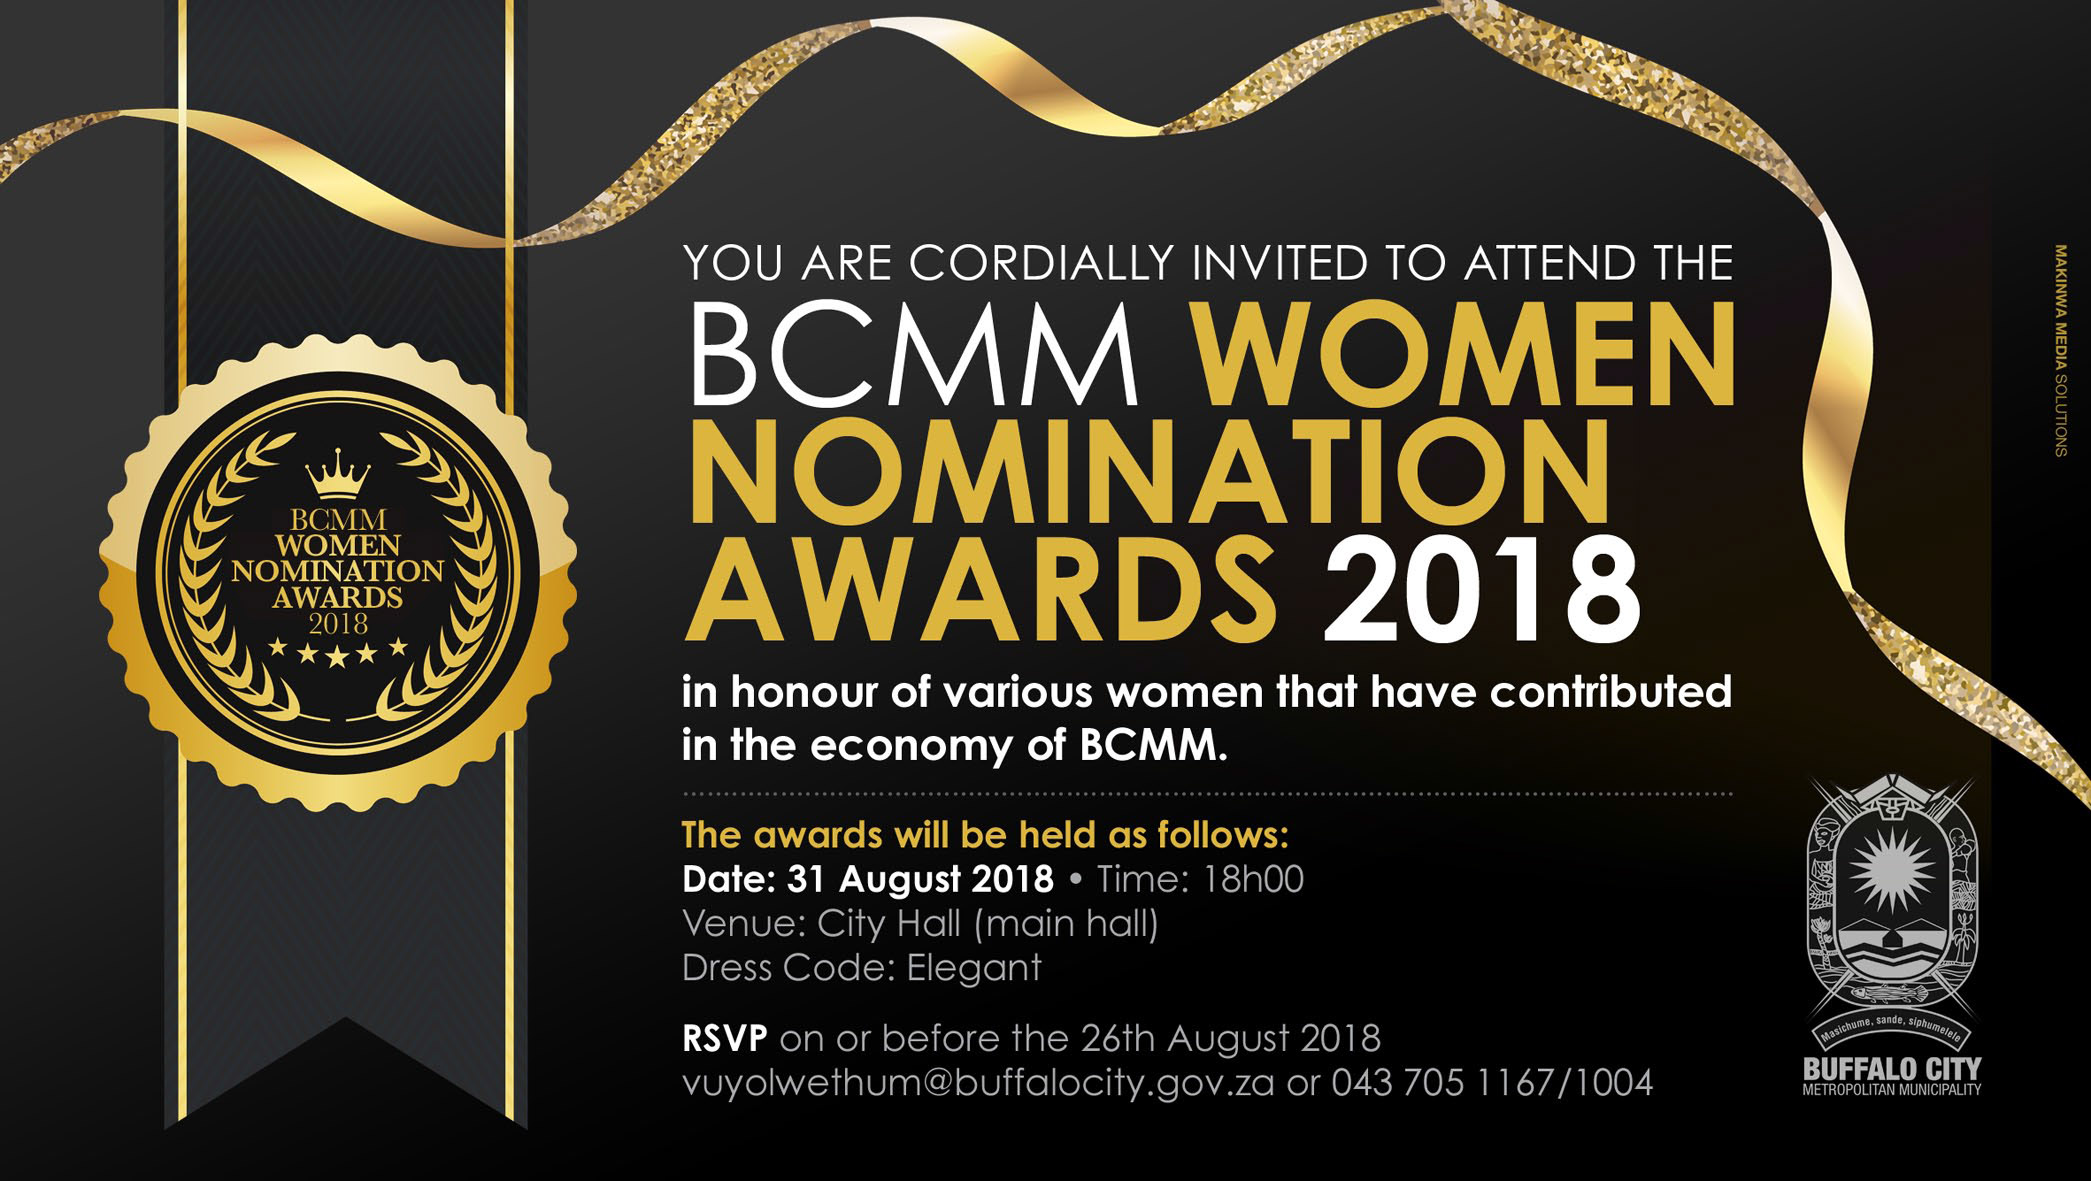 invitation to bcmm nomination awards - 31 august 2018